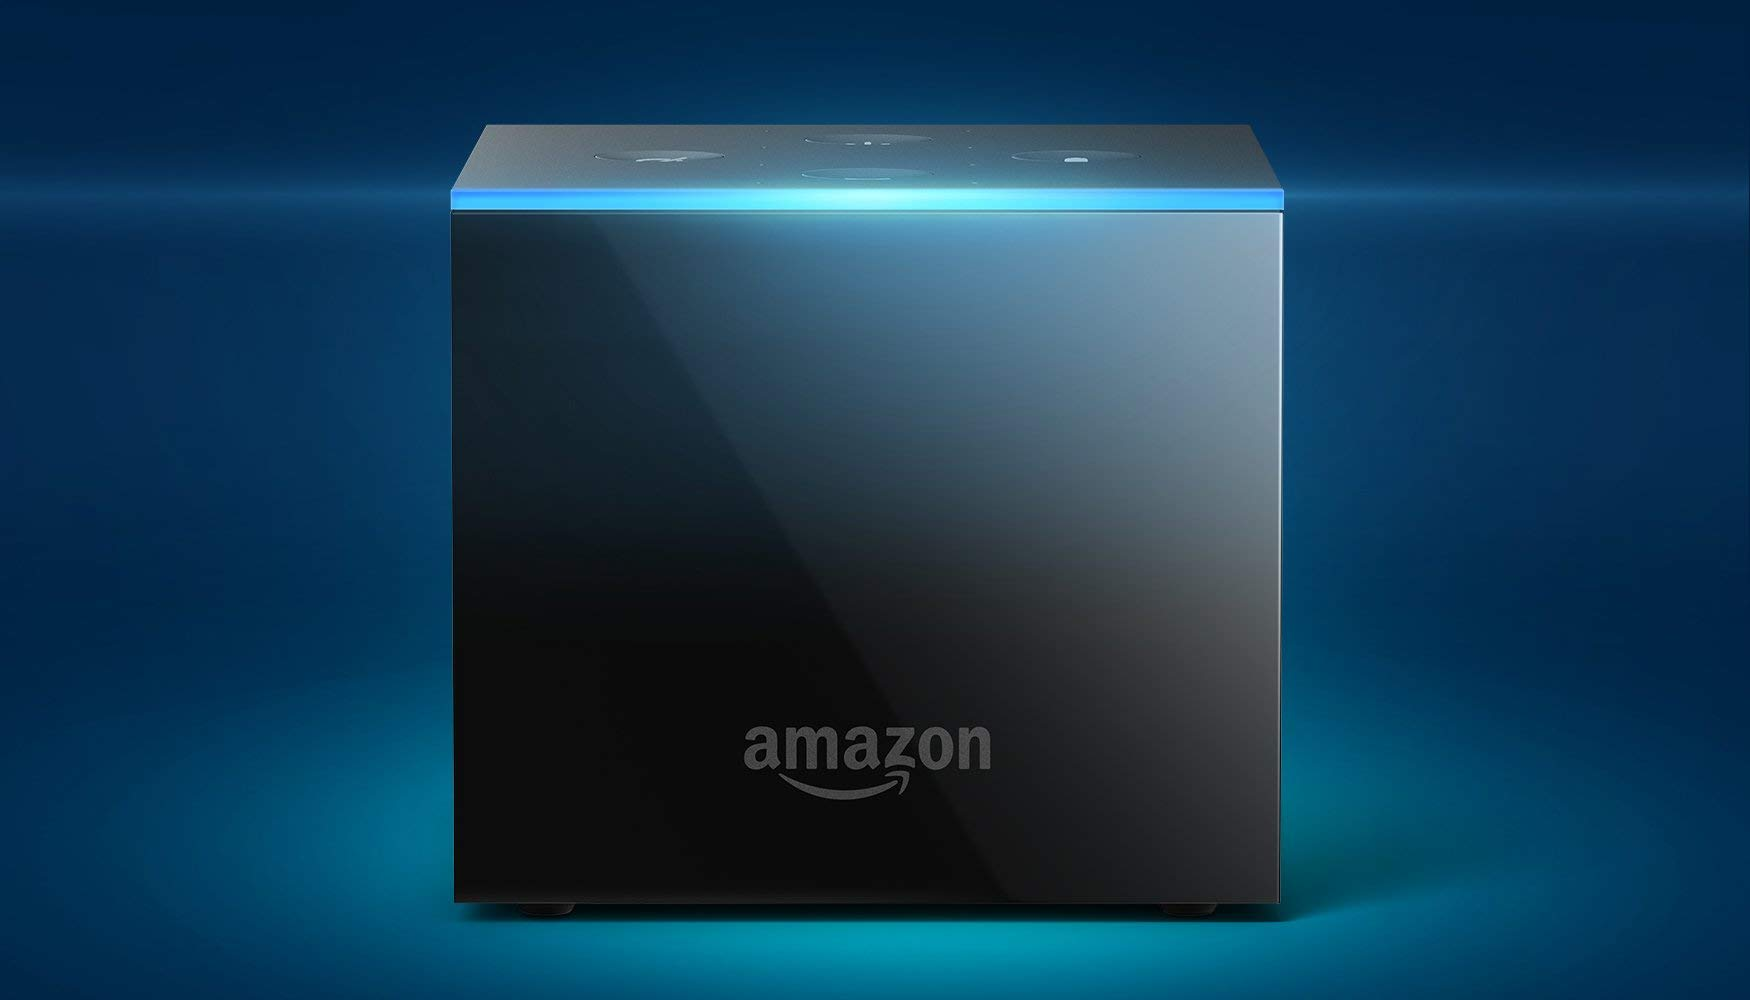 Fire TV Cube (1st Gen), hands-free with Alexa and 4K Ultra HD and 2nd Gen Alexa Voice Remote - Previous Generation by Amazon